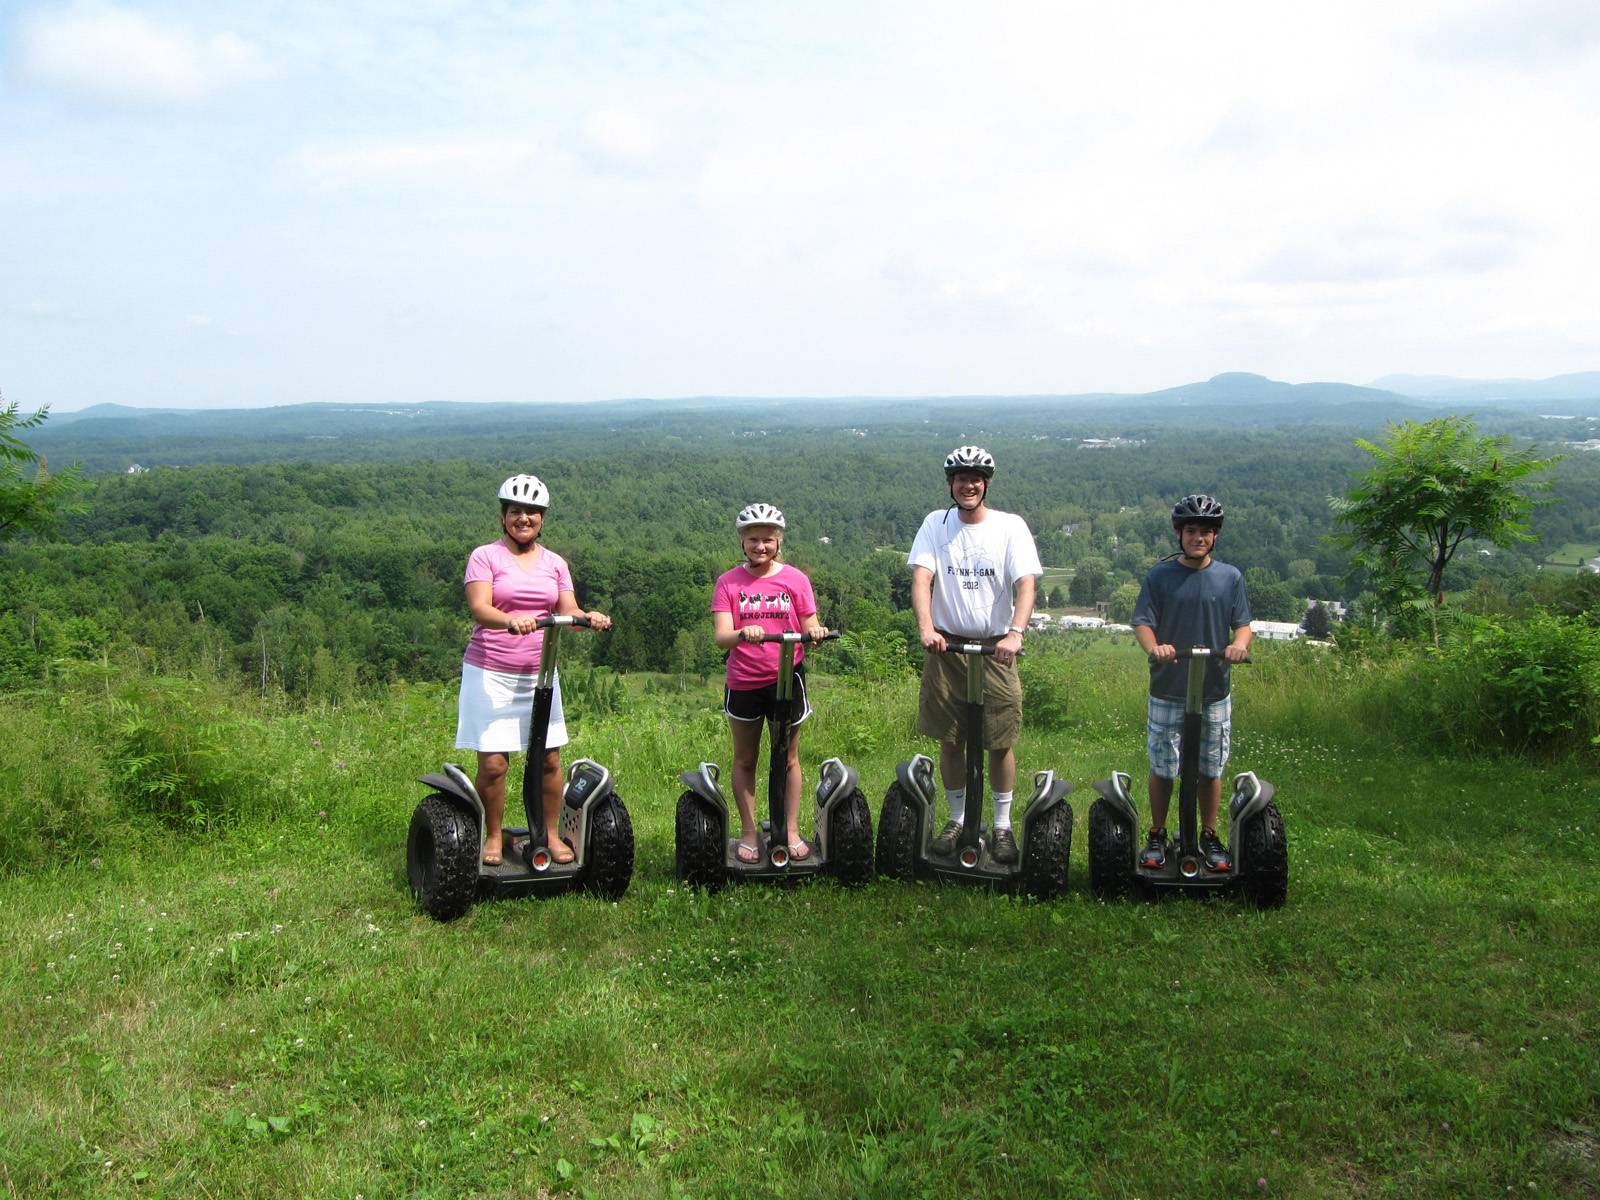 Segway tour at Sharp Park in Milton Vermont - ideas for adventure microweddings in Vermont